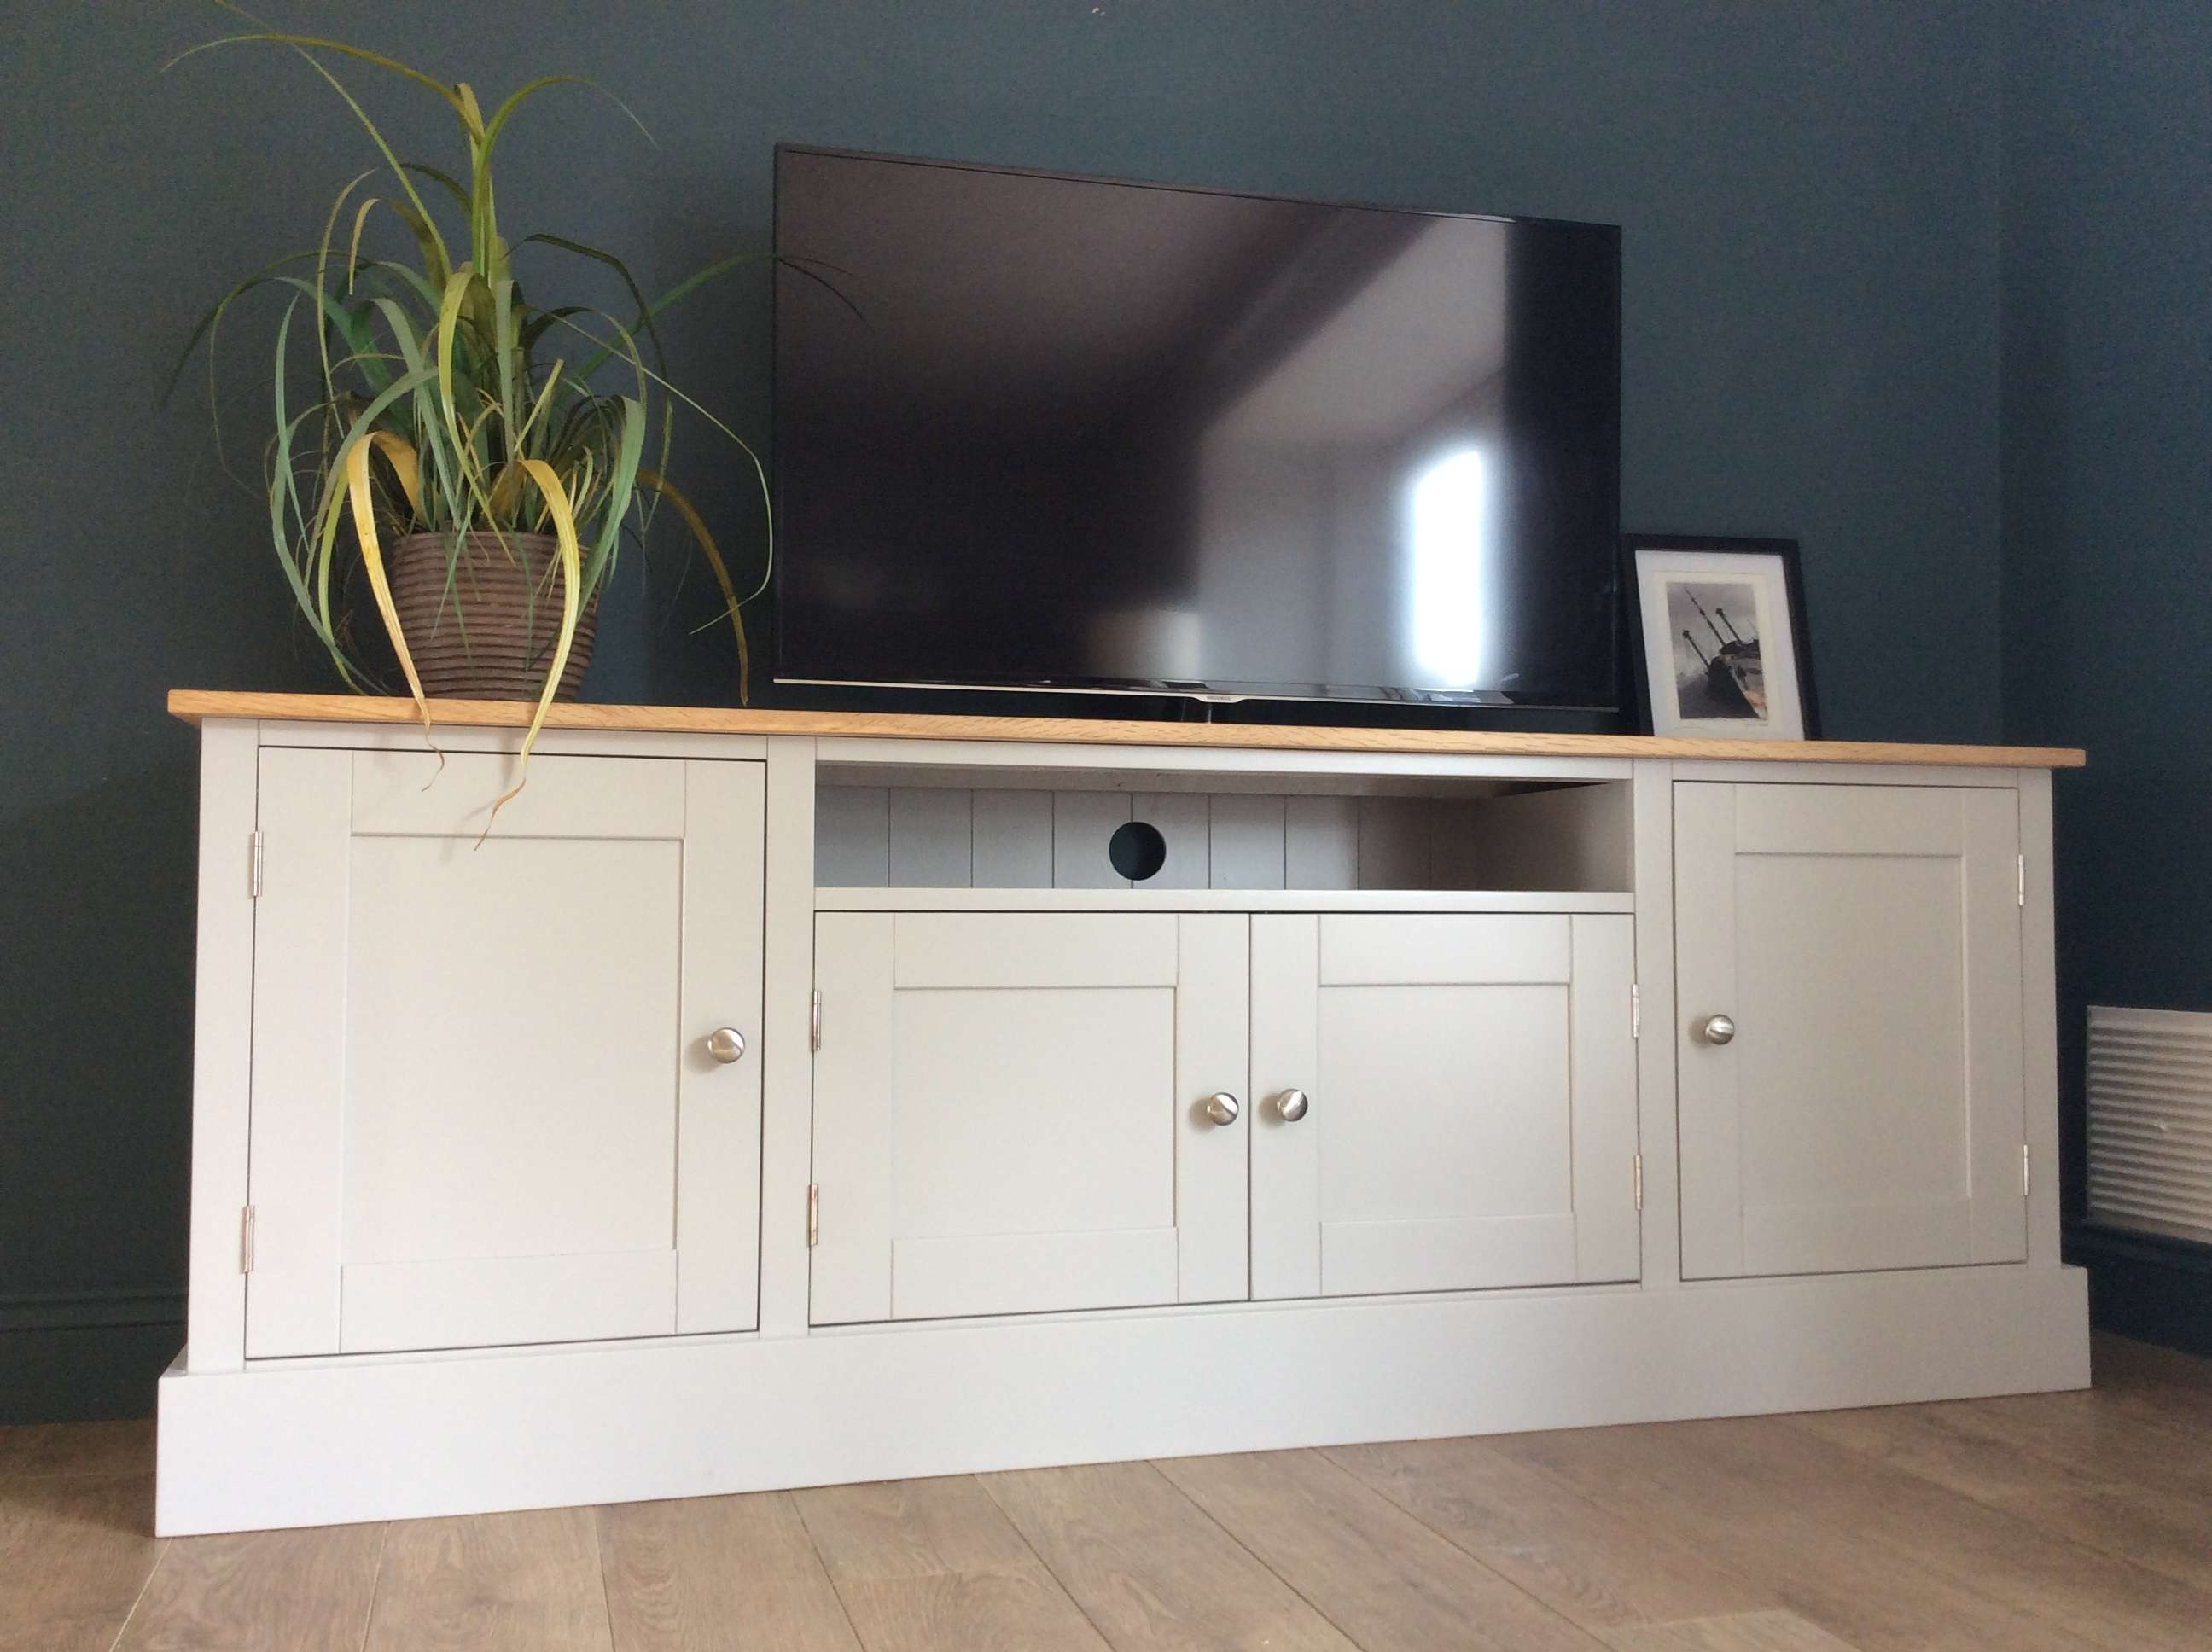 6ft Solid Pine & Oak Tv Cabinet – Nest At Number 20 Inside Solid Oak Tv Cabinets (View 14 of 20)